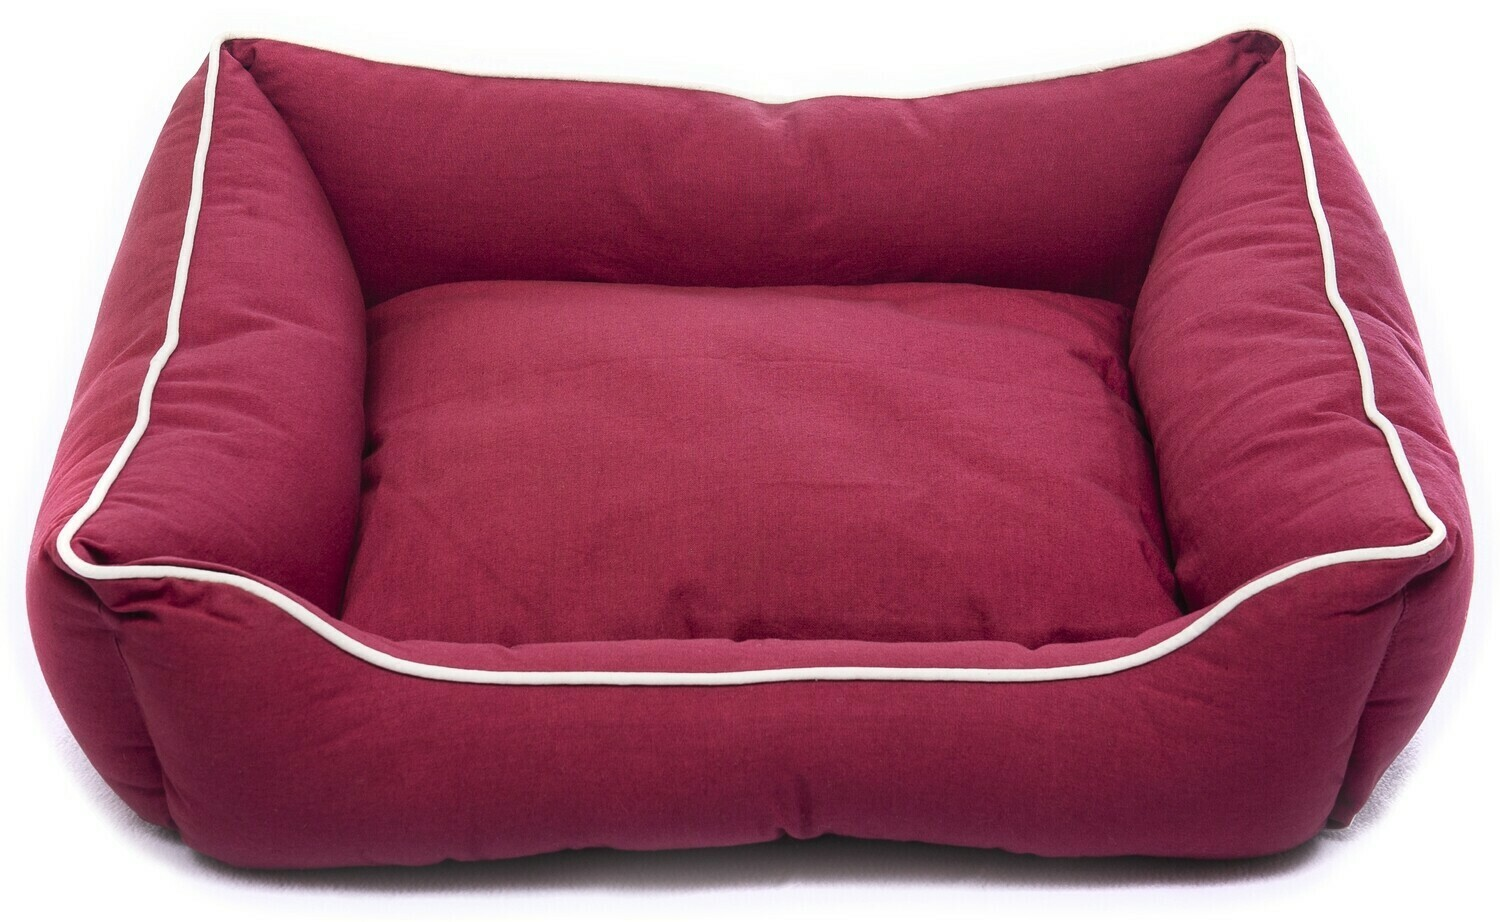 DGS Lounger Bed Large - Berry